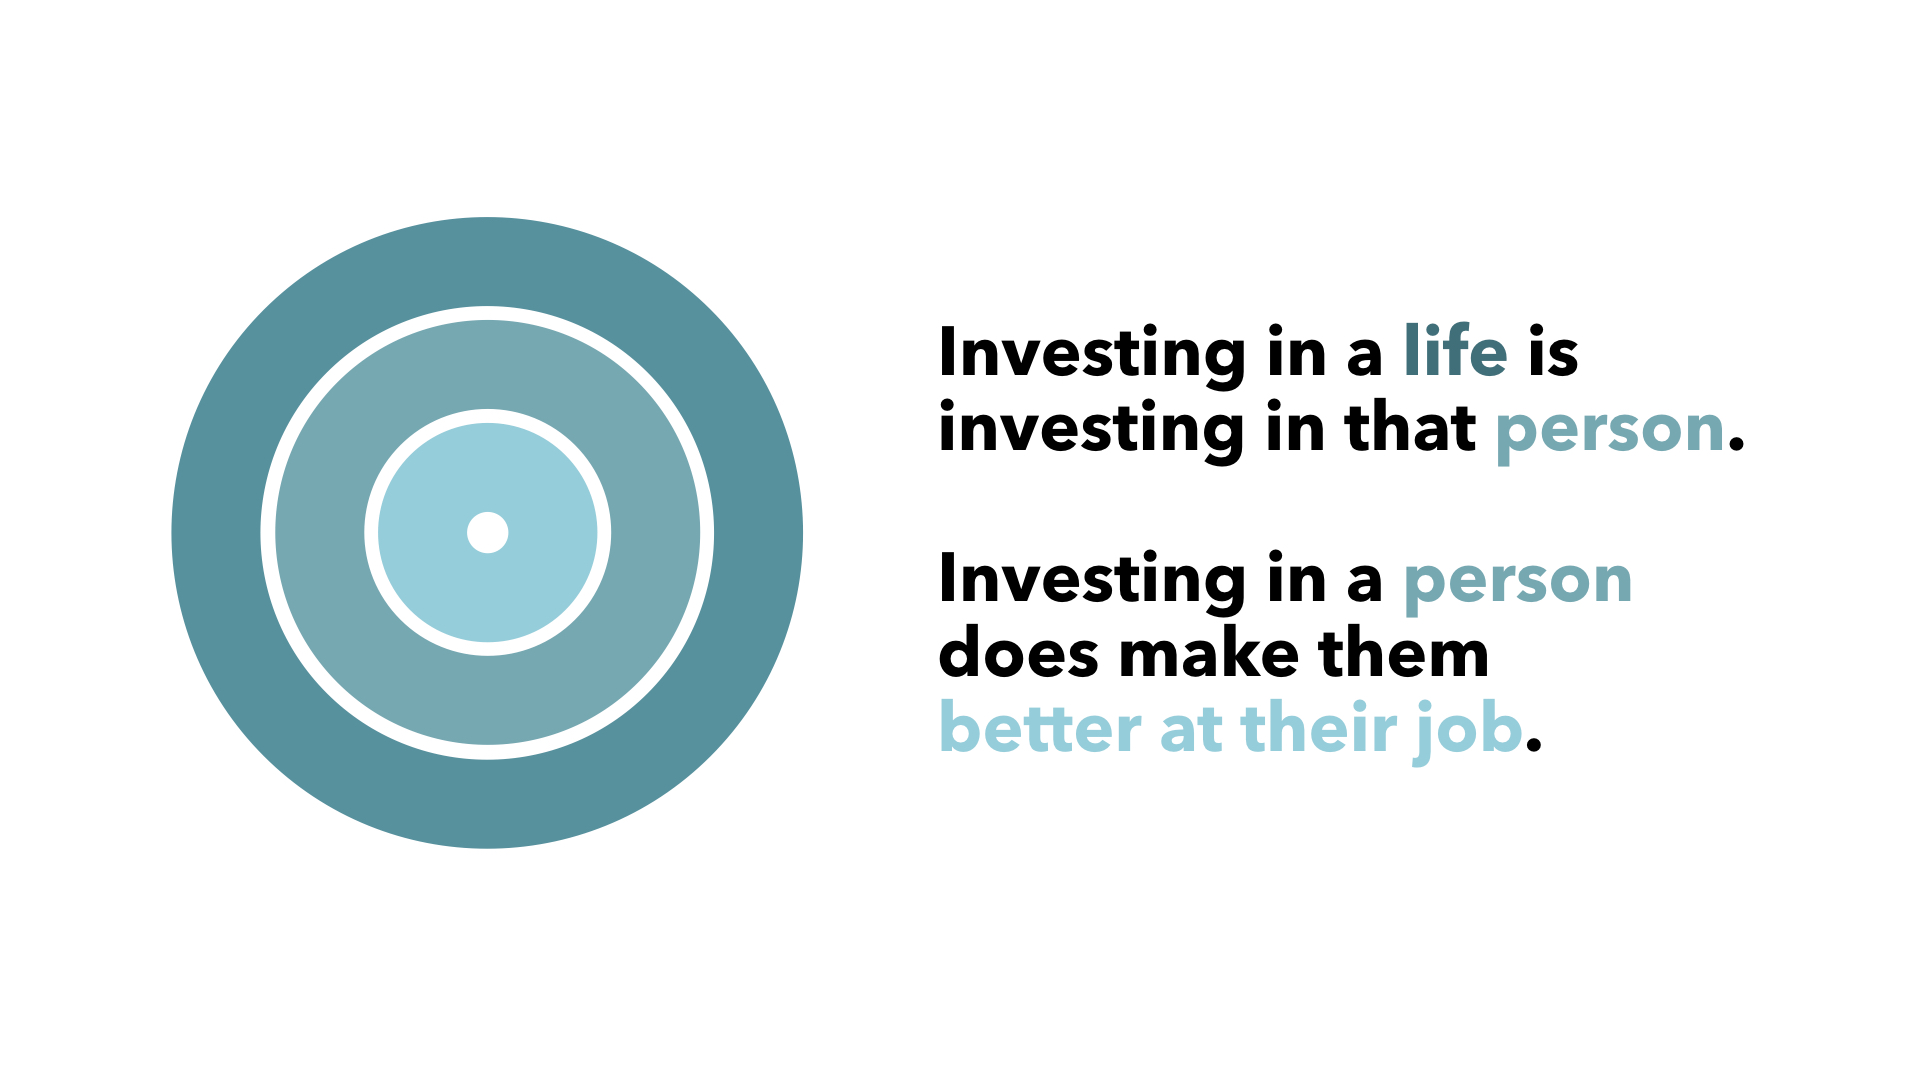 Investing in a life is investing in that person. Investing in a person does make them better at their job.